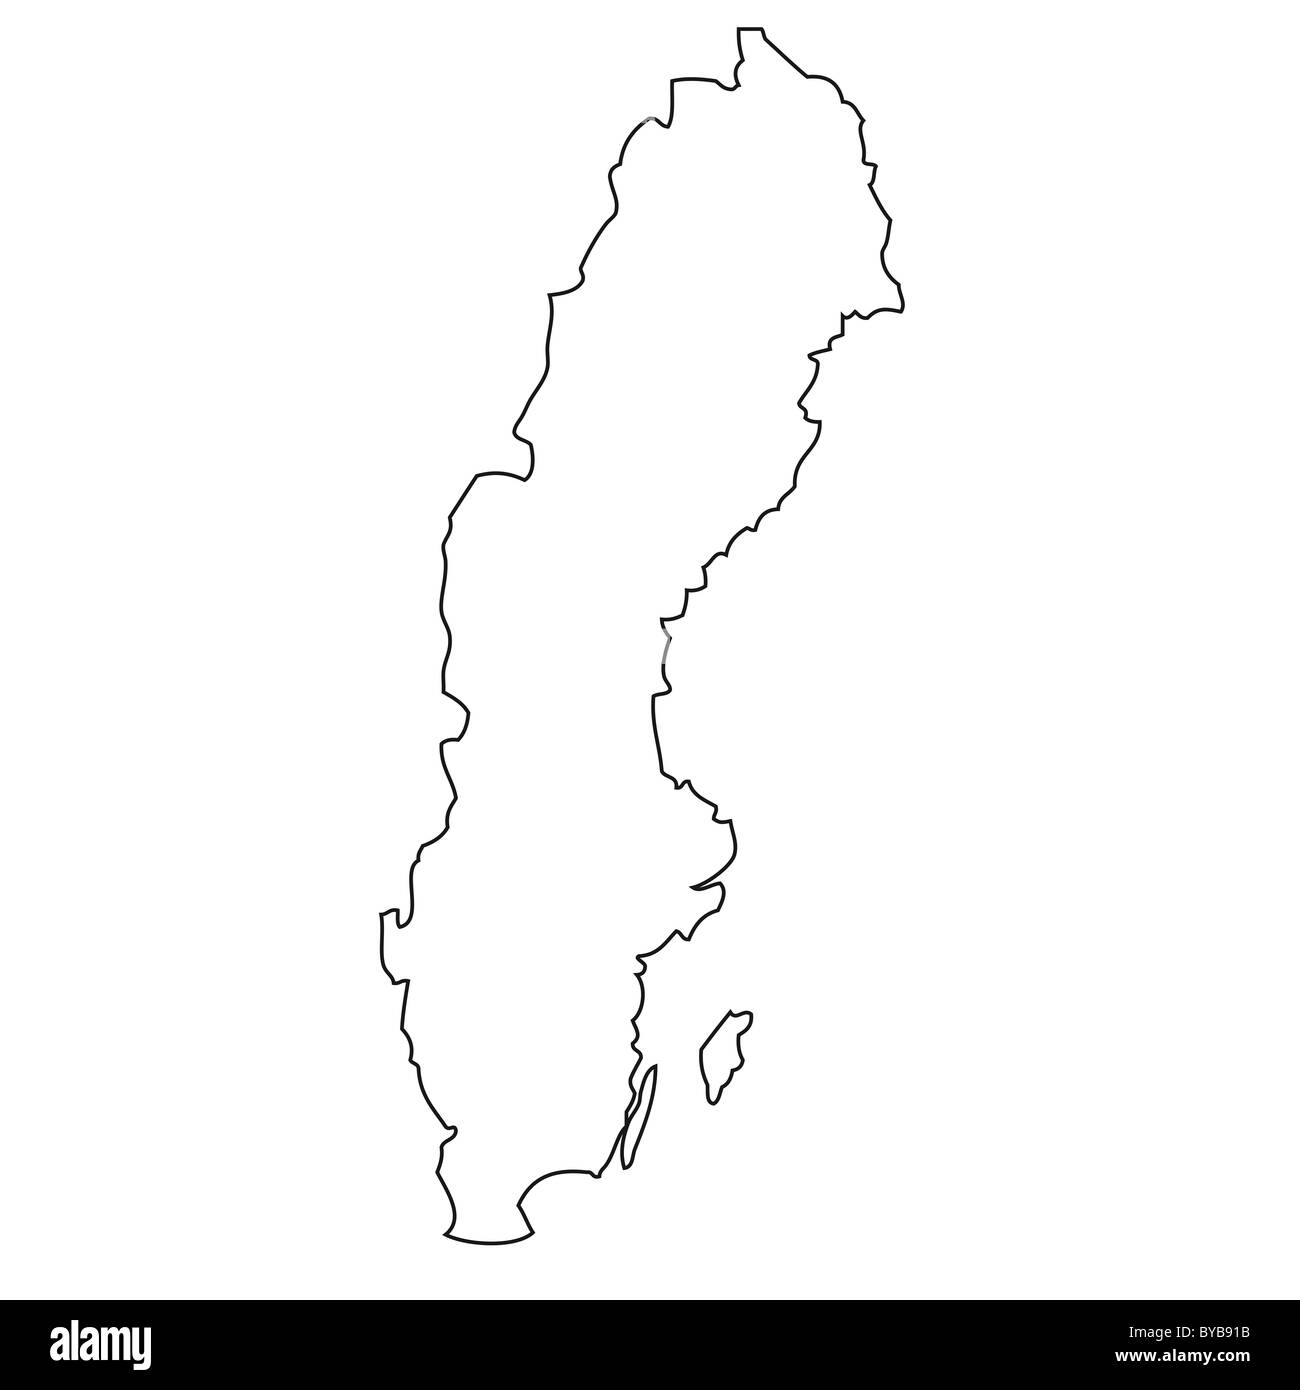 Outline Map Of Sweden Stock Photo Royalty Free Image - Sweden map free